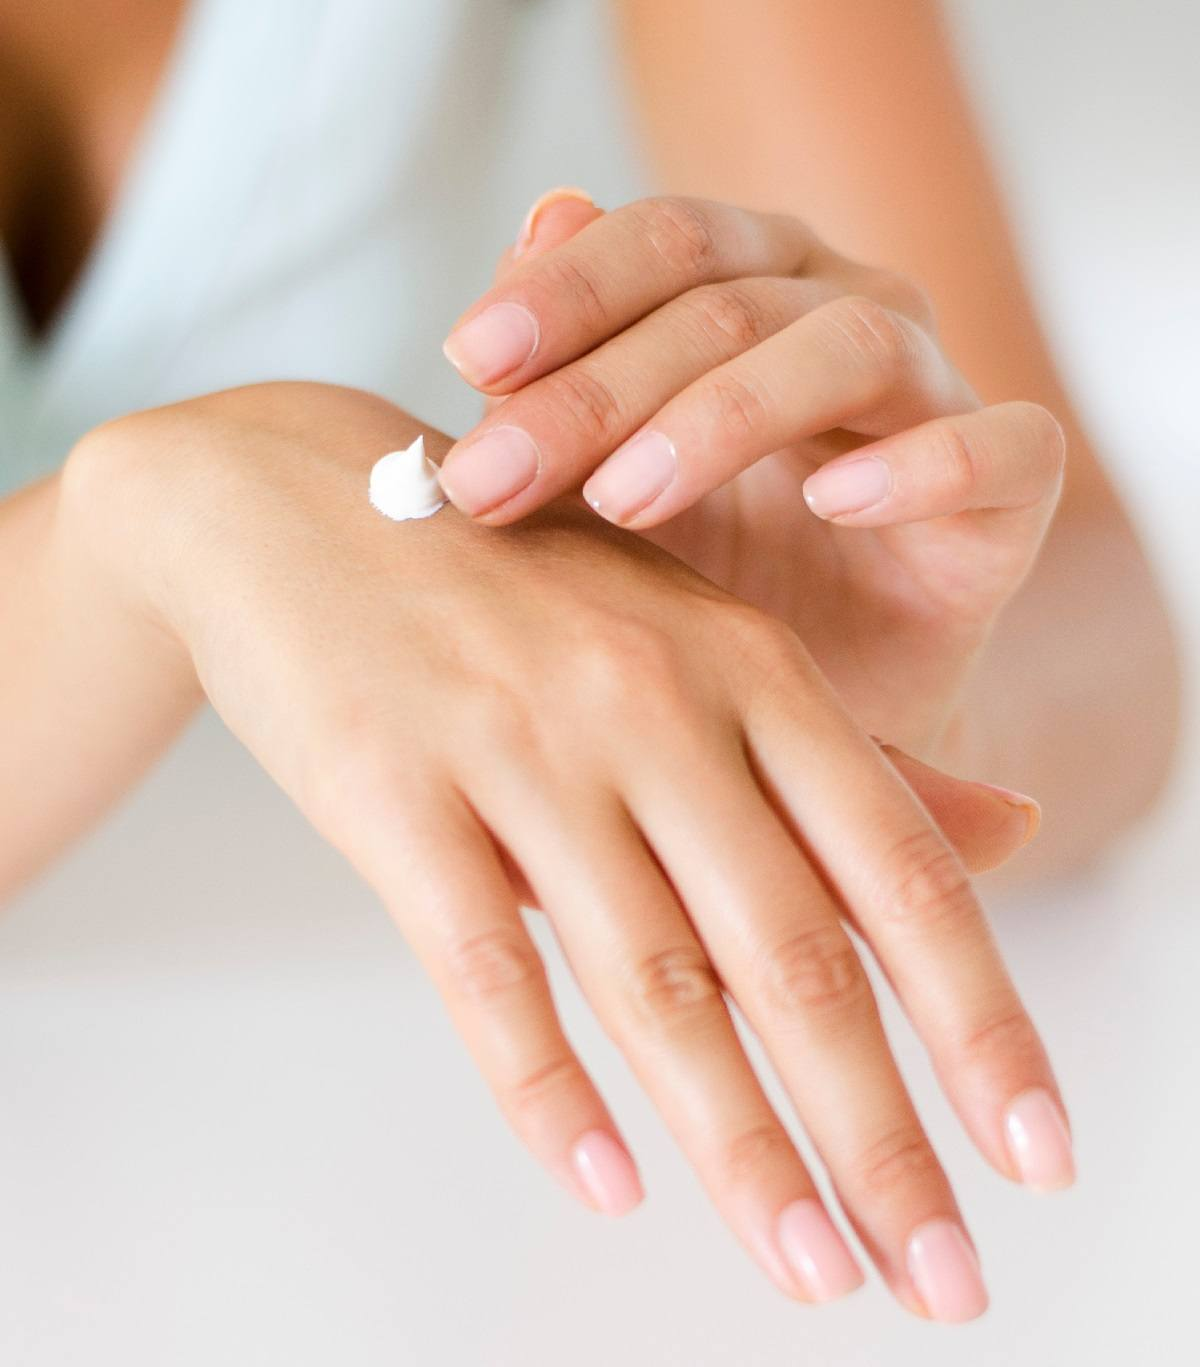 lotion, shingles, woman, hand, creme